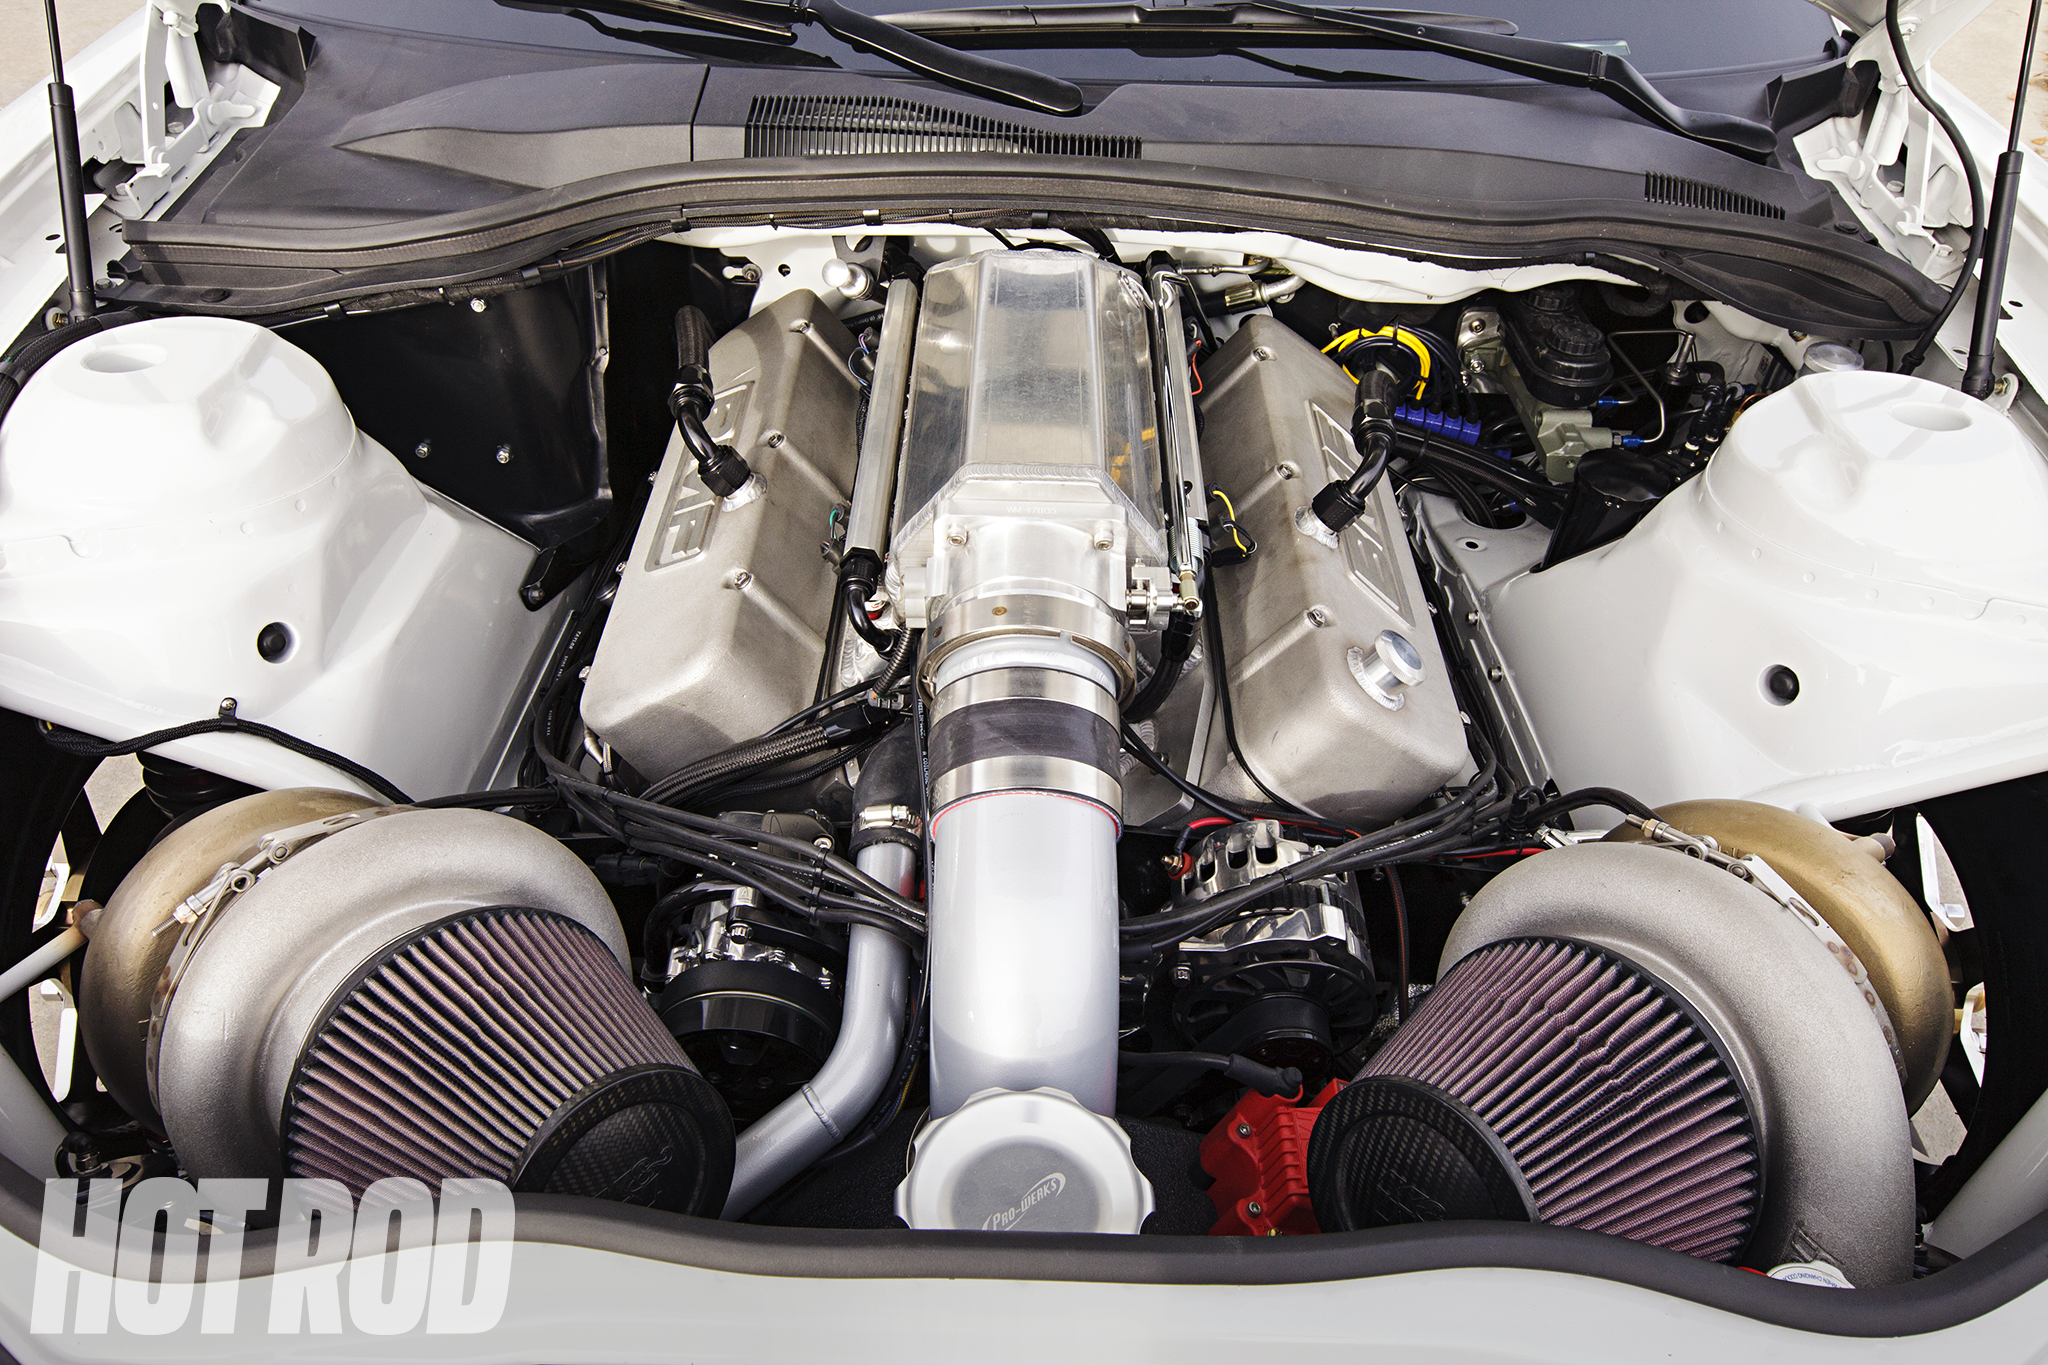 Crammed in among the factory white sheetmetal is a 540ci Burlington Performance, CFE billet-aluminum big-block running Precision Turbos Gen 1 88mm turbos combined with Precision 66mm wastegates and a Larson Race Cars air-to-water intercooler.